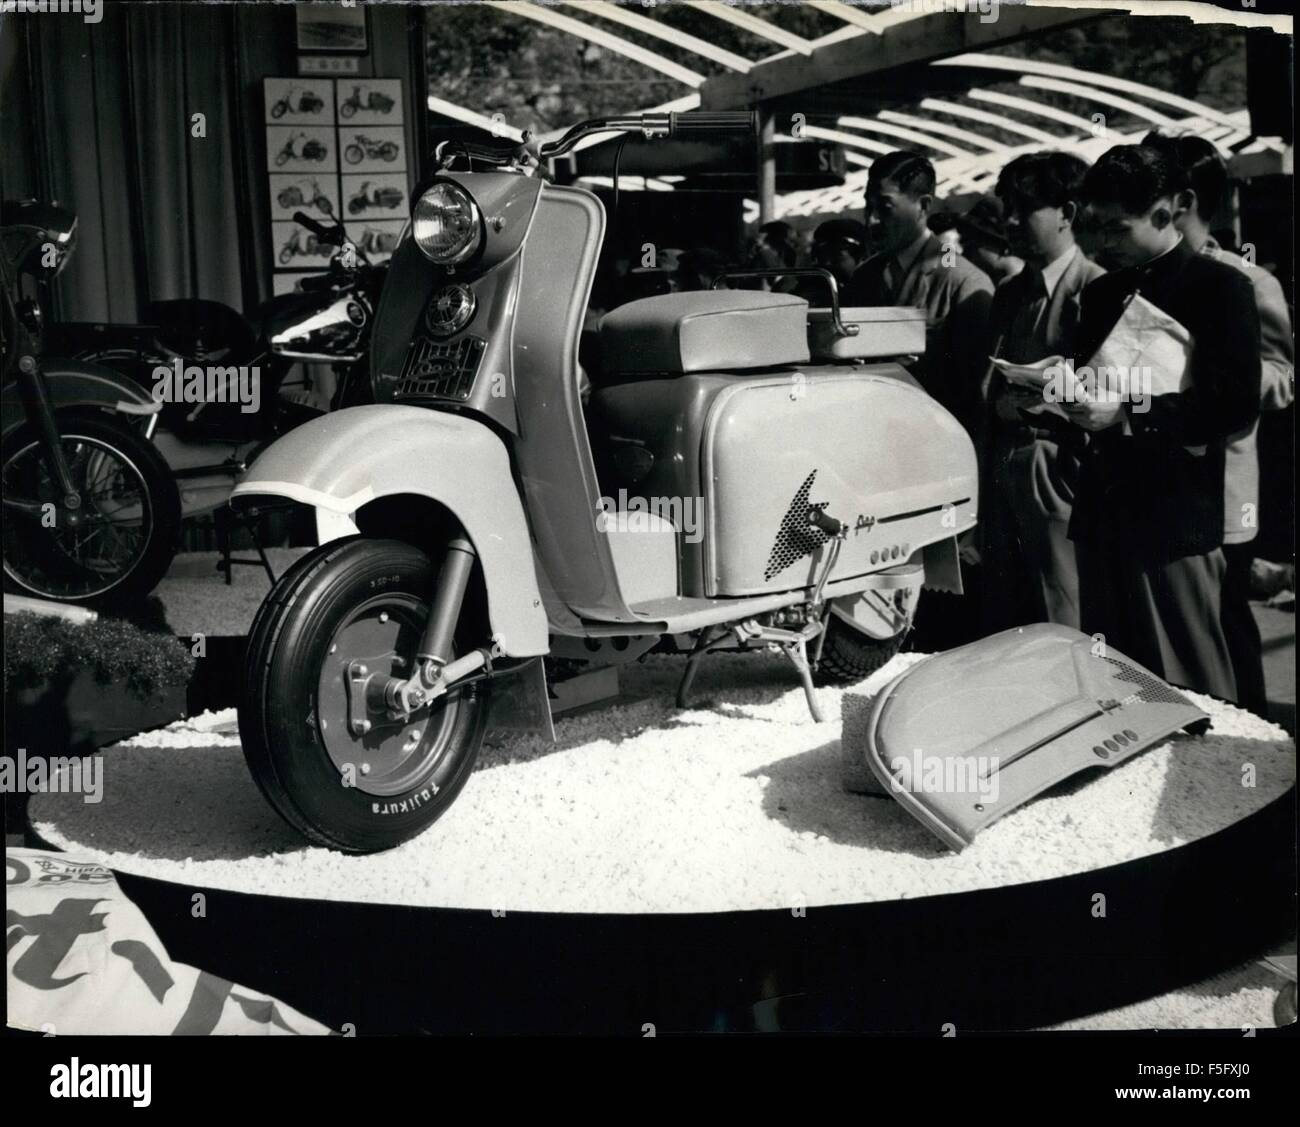 1962 - Japs Like The Motor Scooter: This model on a slow at the Tokyo Motor Show is called ''The Pop''., - Stock Image